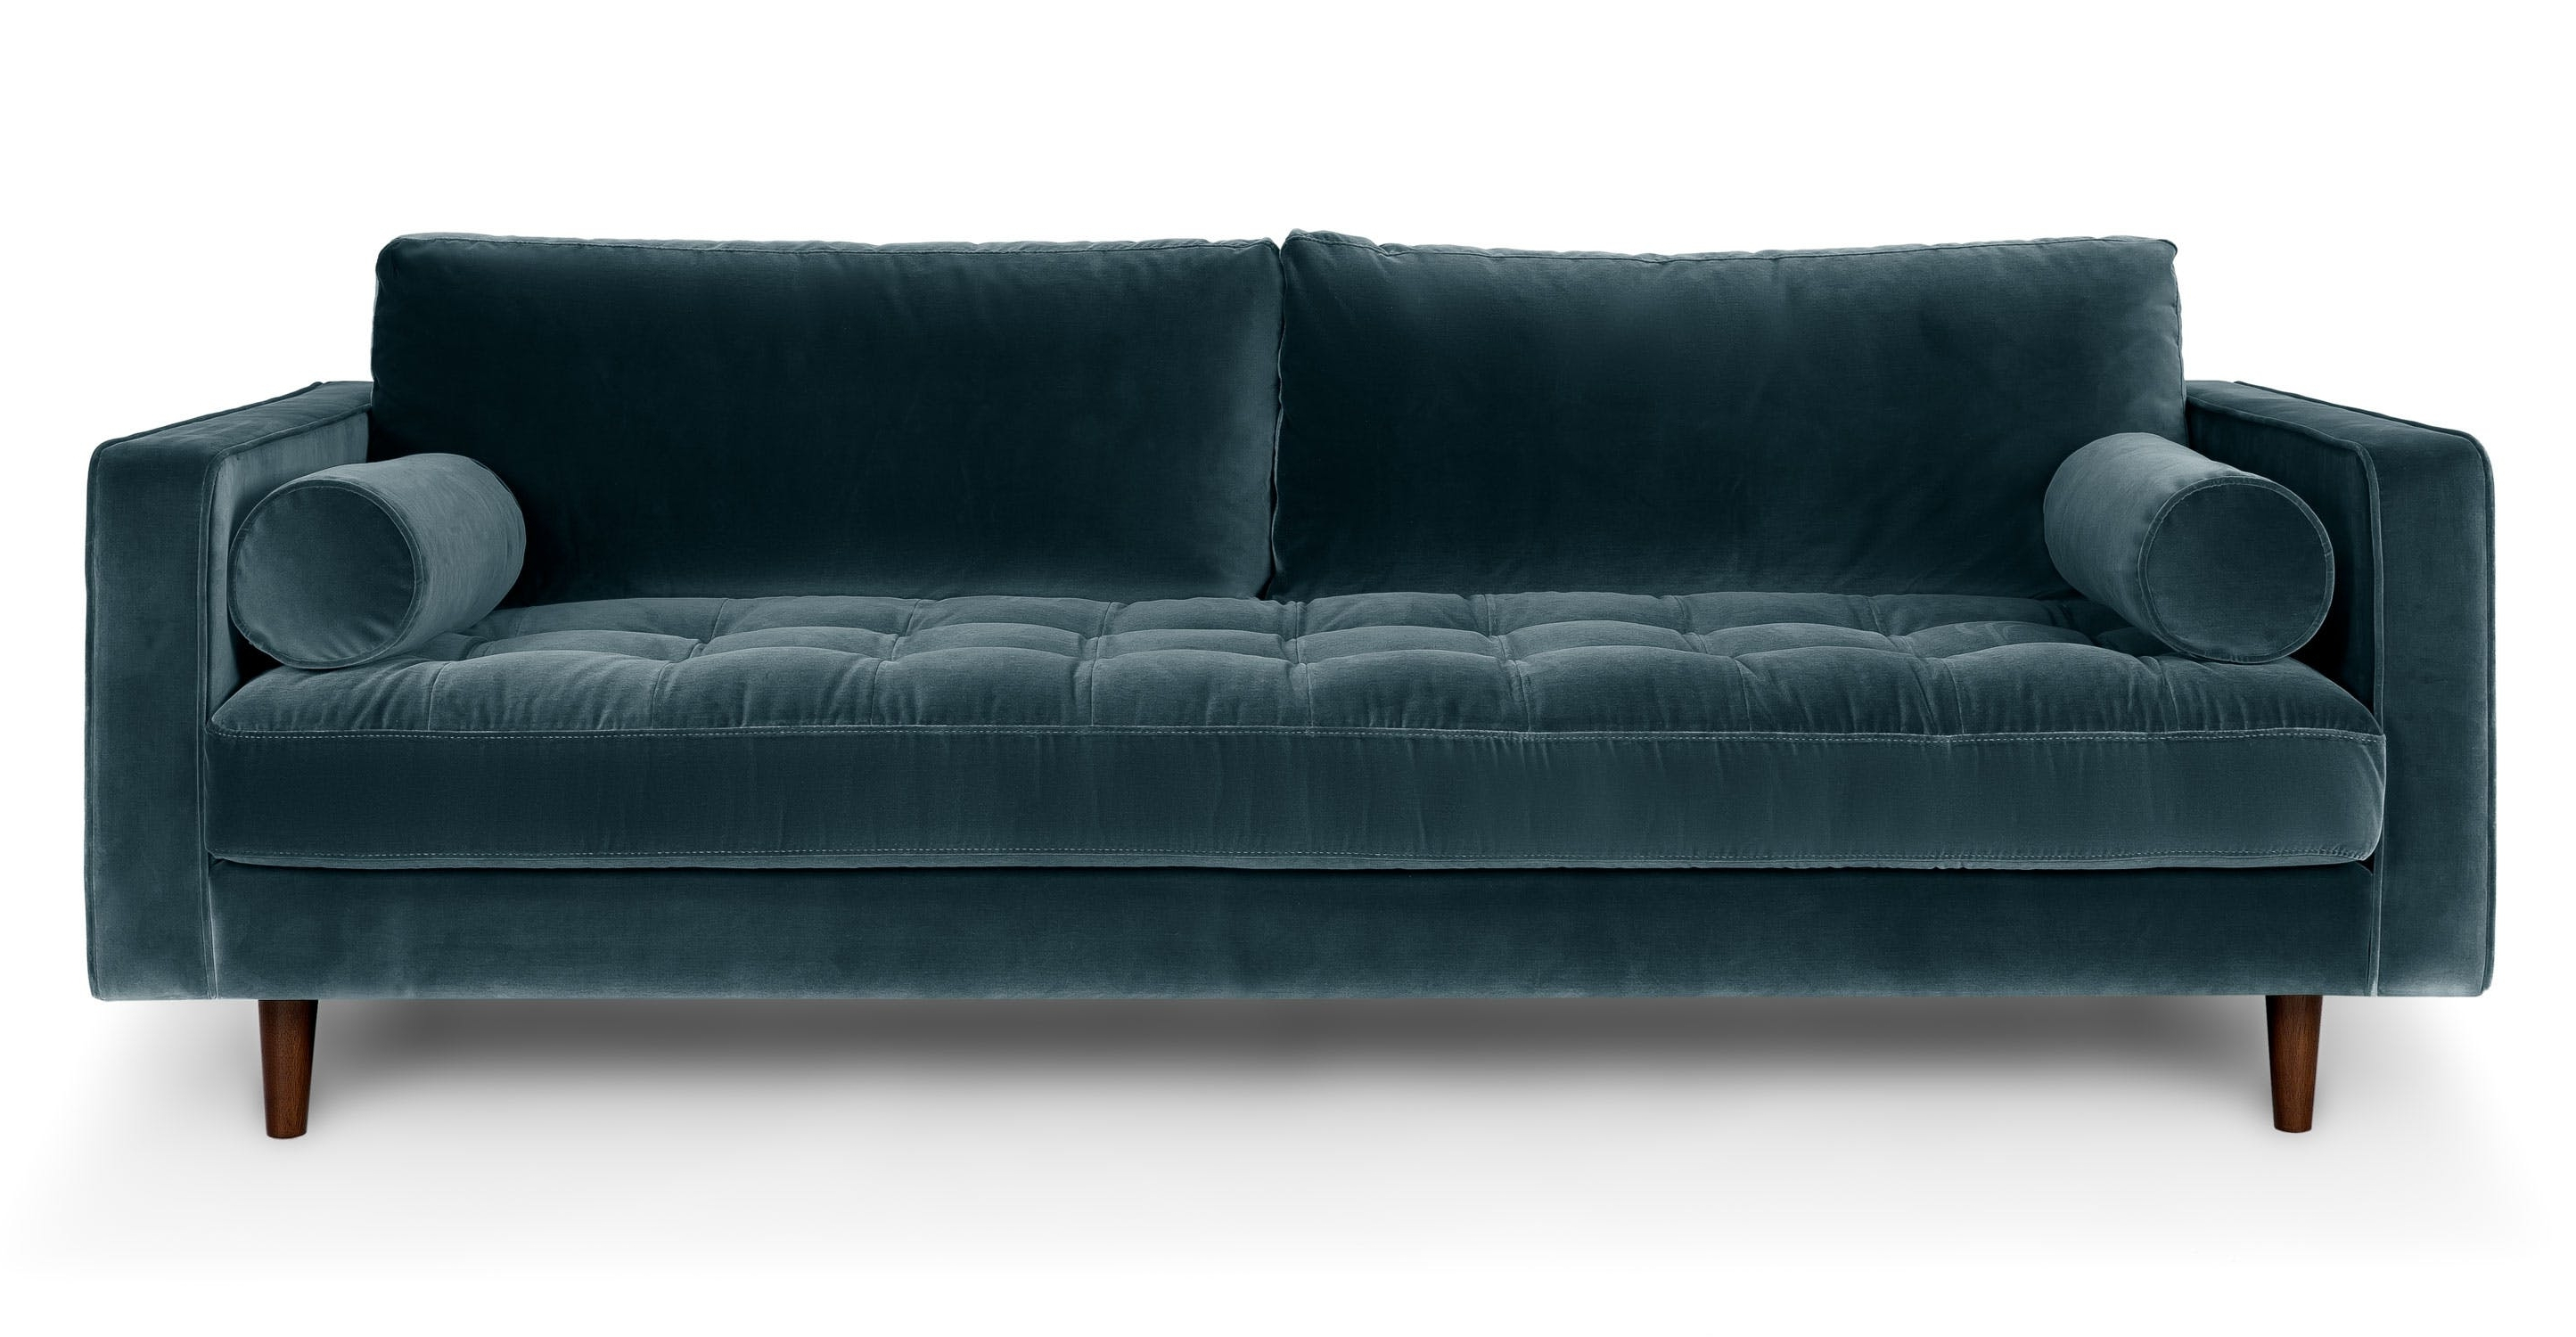 Comfortable Sofa With Regard To Comfortable Sofas And Chairs (View 18 of 20)